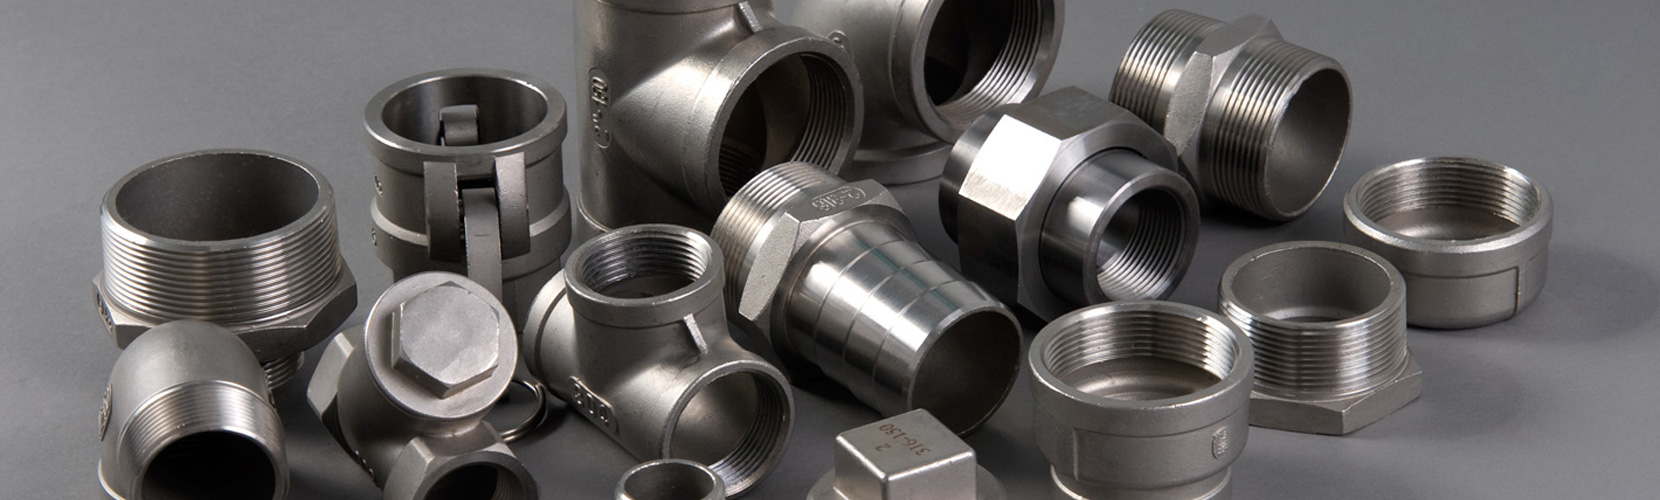 Stainless Steel Forged Fittings Exporter in Egypt